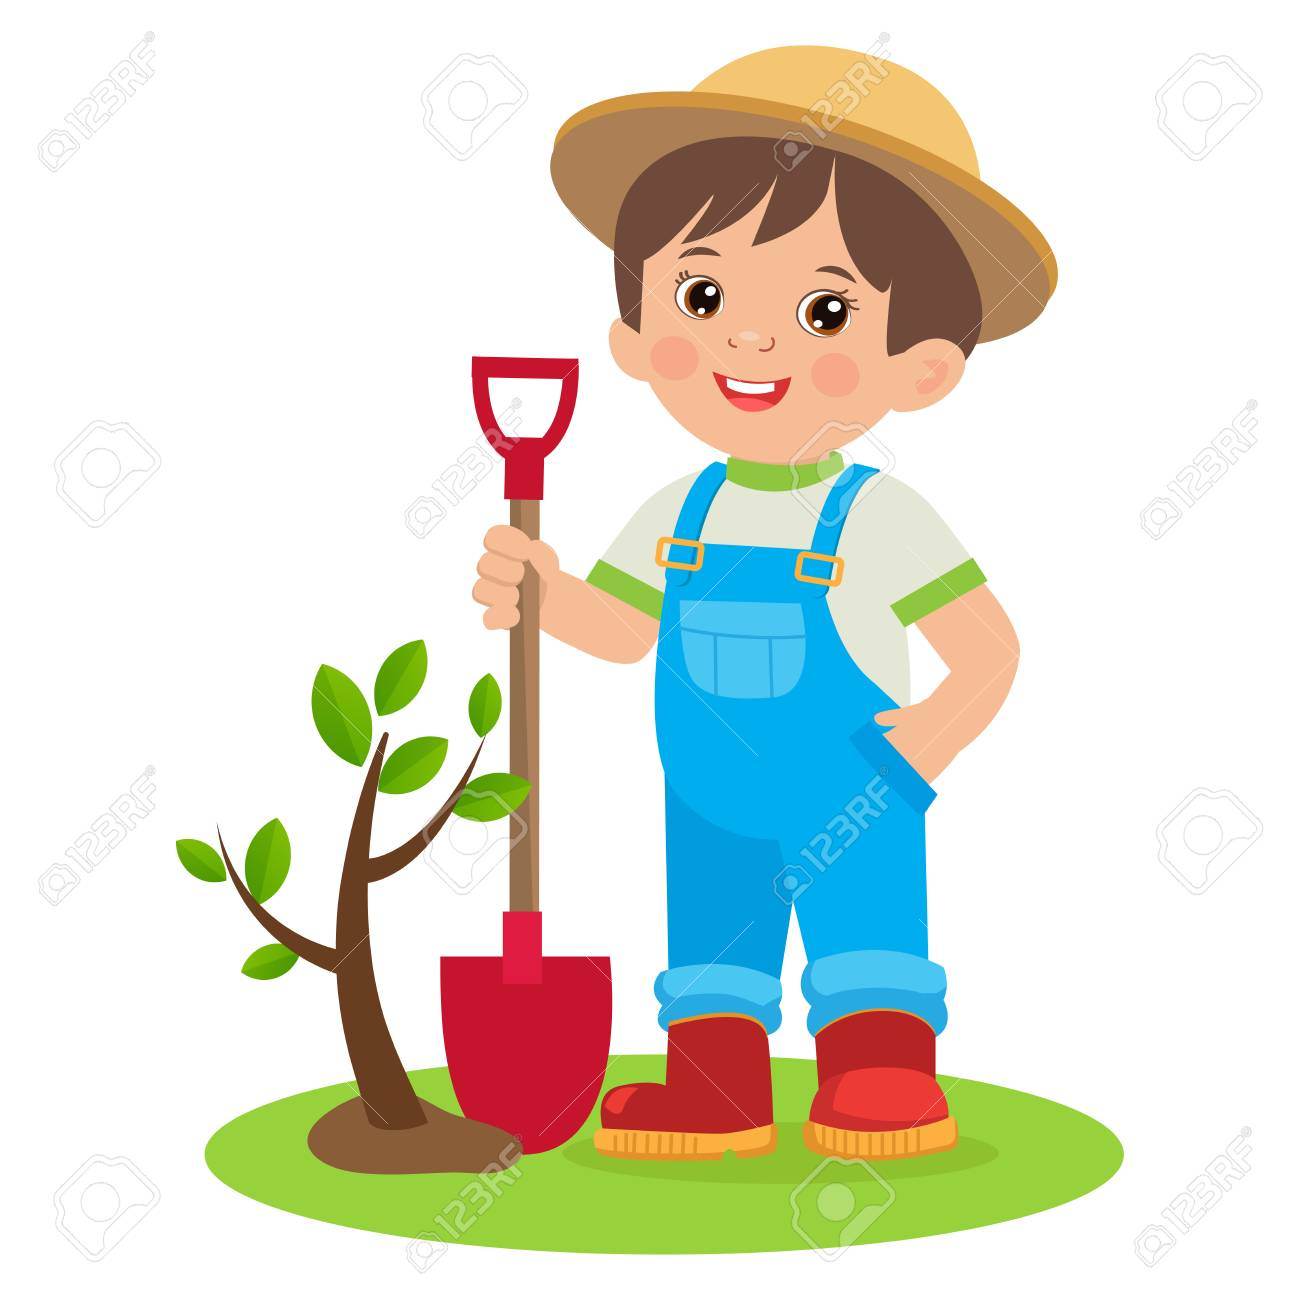 Spring Gardening. Growing Young Gardener. Cute Cartoon Boy With Shovel. Young Farmer Planting A Tree Colorful Simple Design Vector. - 100068829